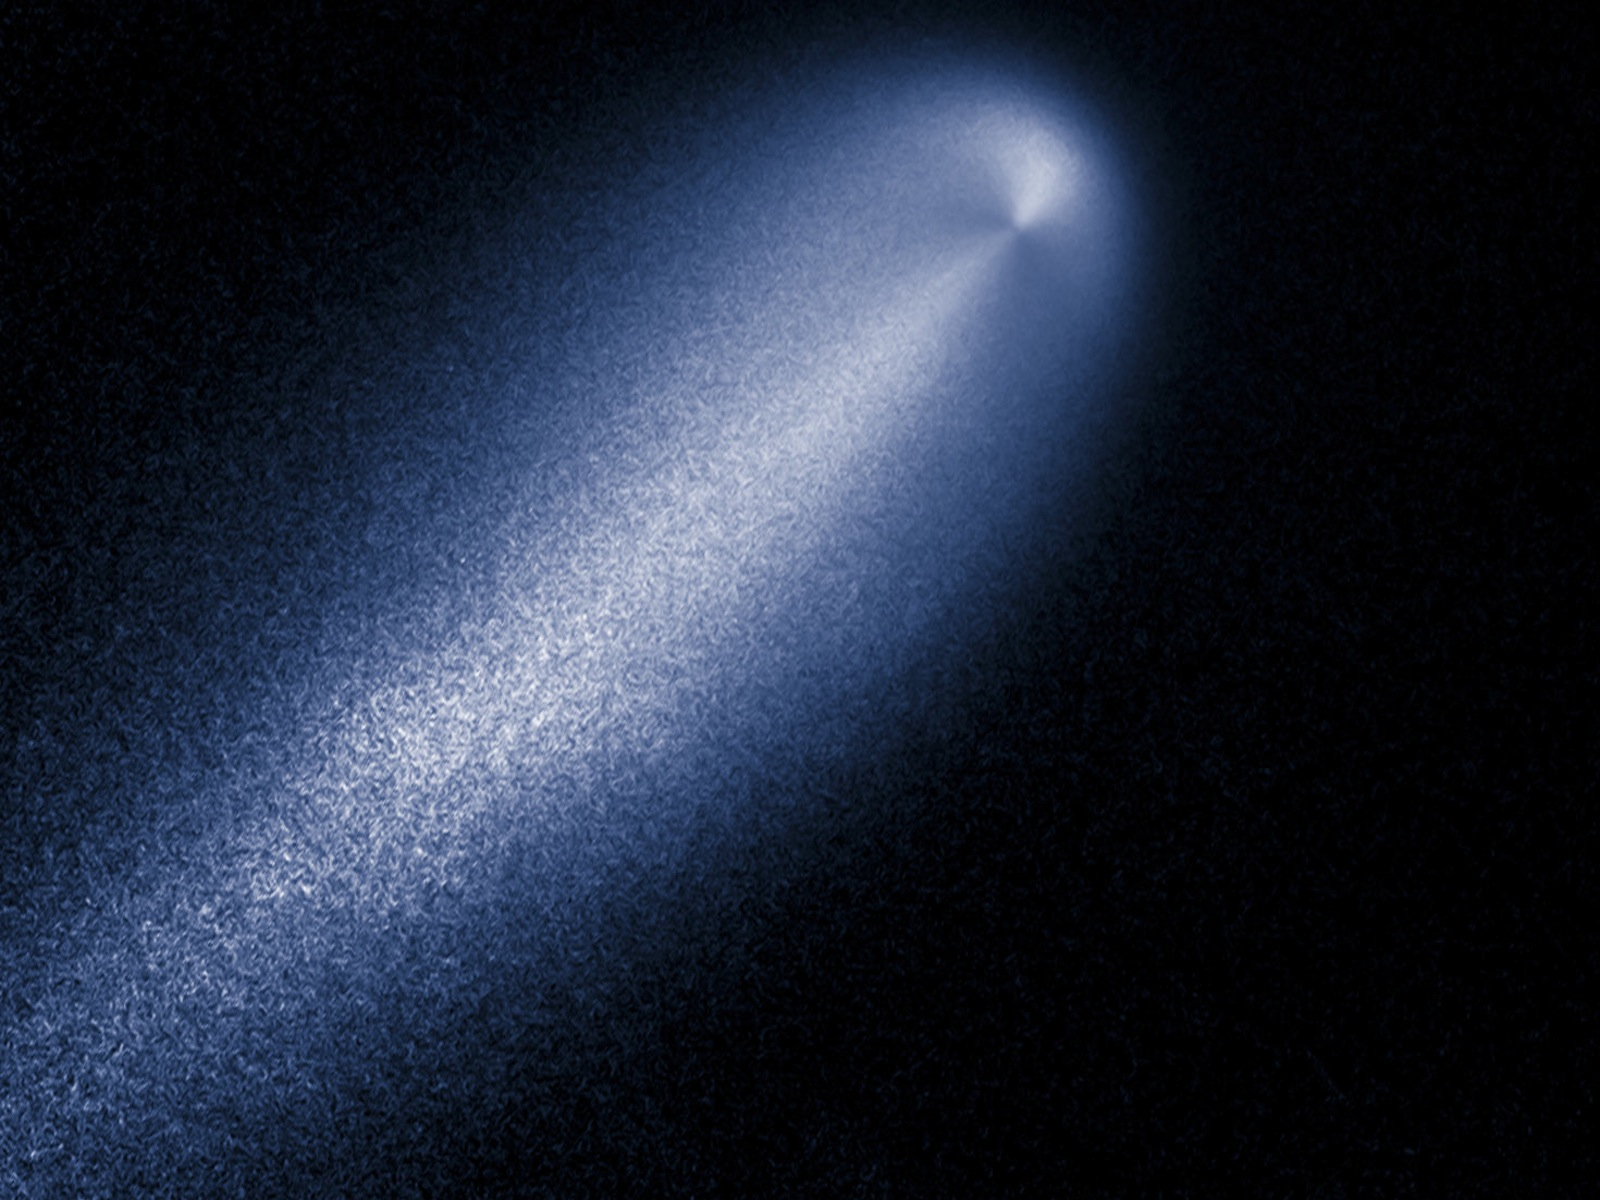 Comet ISON Enhanced Hubble Image space wallpaper